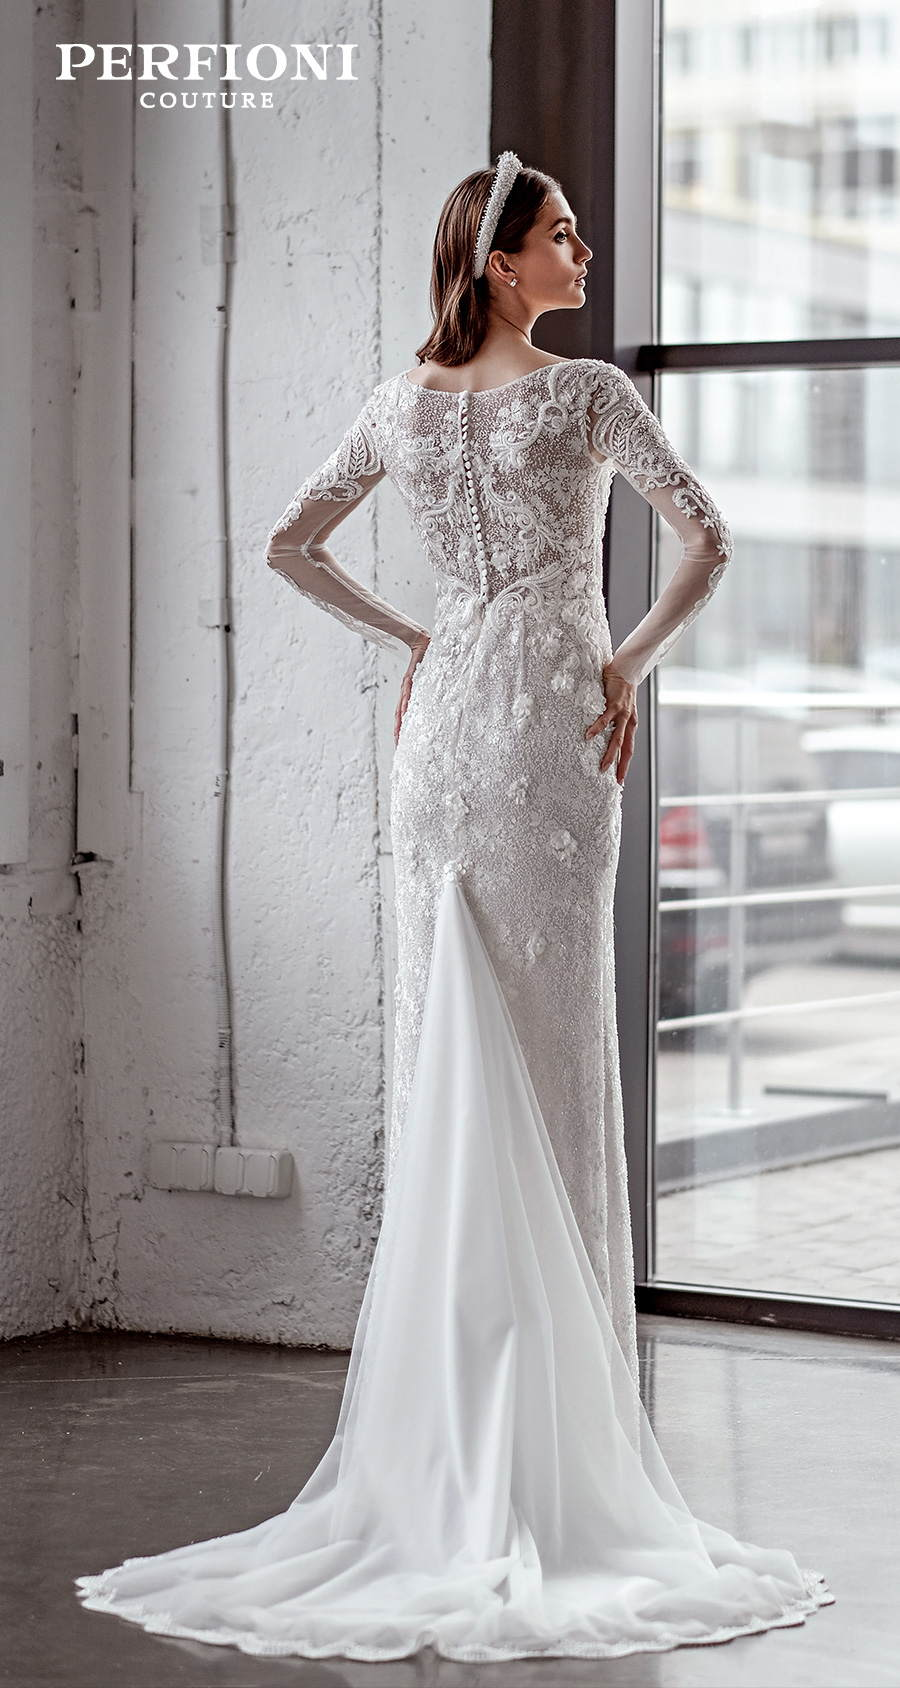 perfioni 2020 love season bridal long sleeves v neck full embellishment elegant sheath wedding dress covered lace back sweep train (sarah) bv